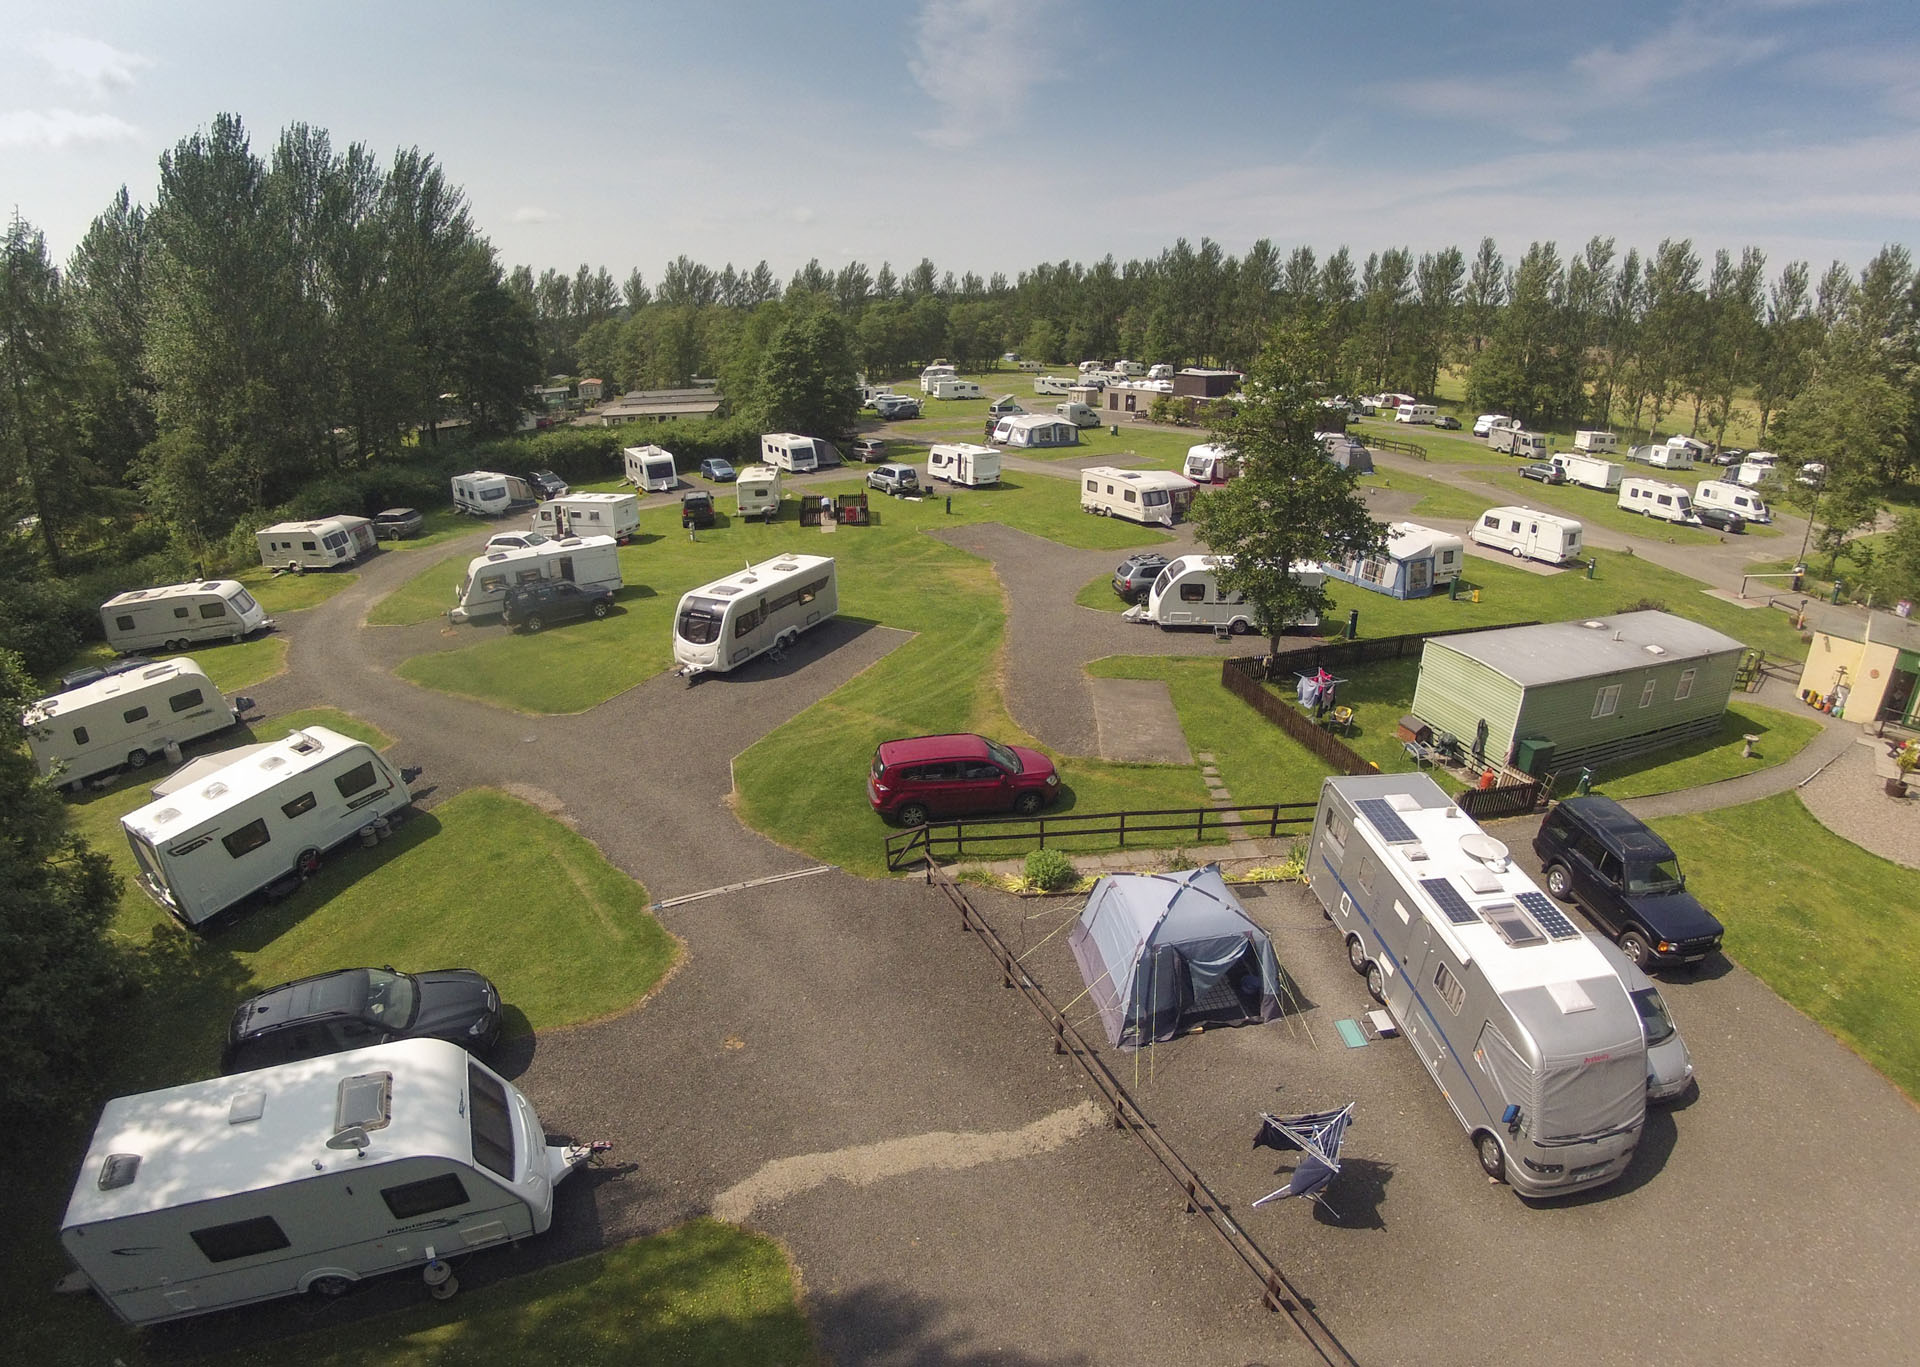 Moreton - Camping and Caravanning Club Site - The Camping